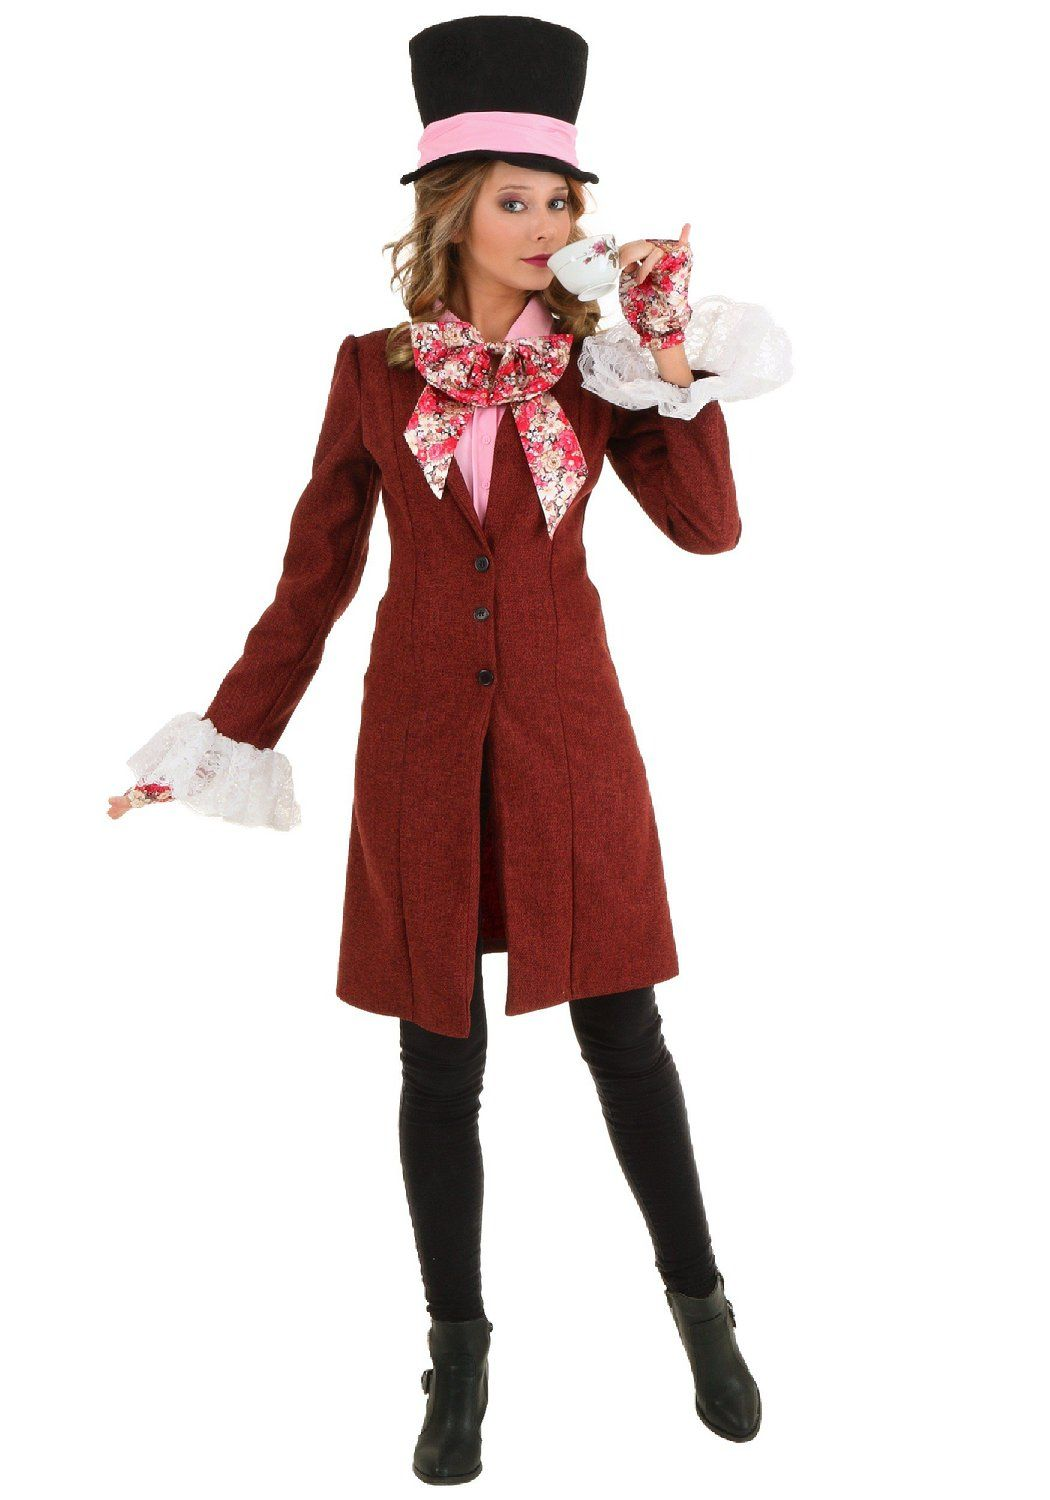 Captivating Fun Costumes Womens Deluxe Womenu0027s Mad Hatter Costume Small